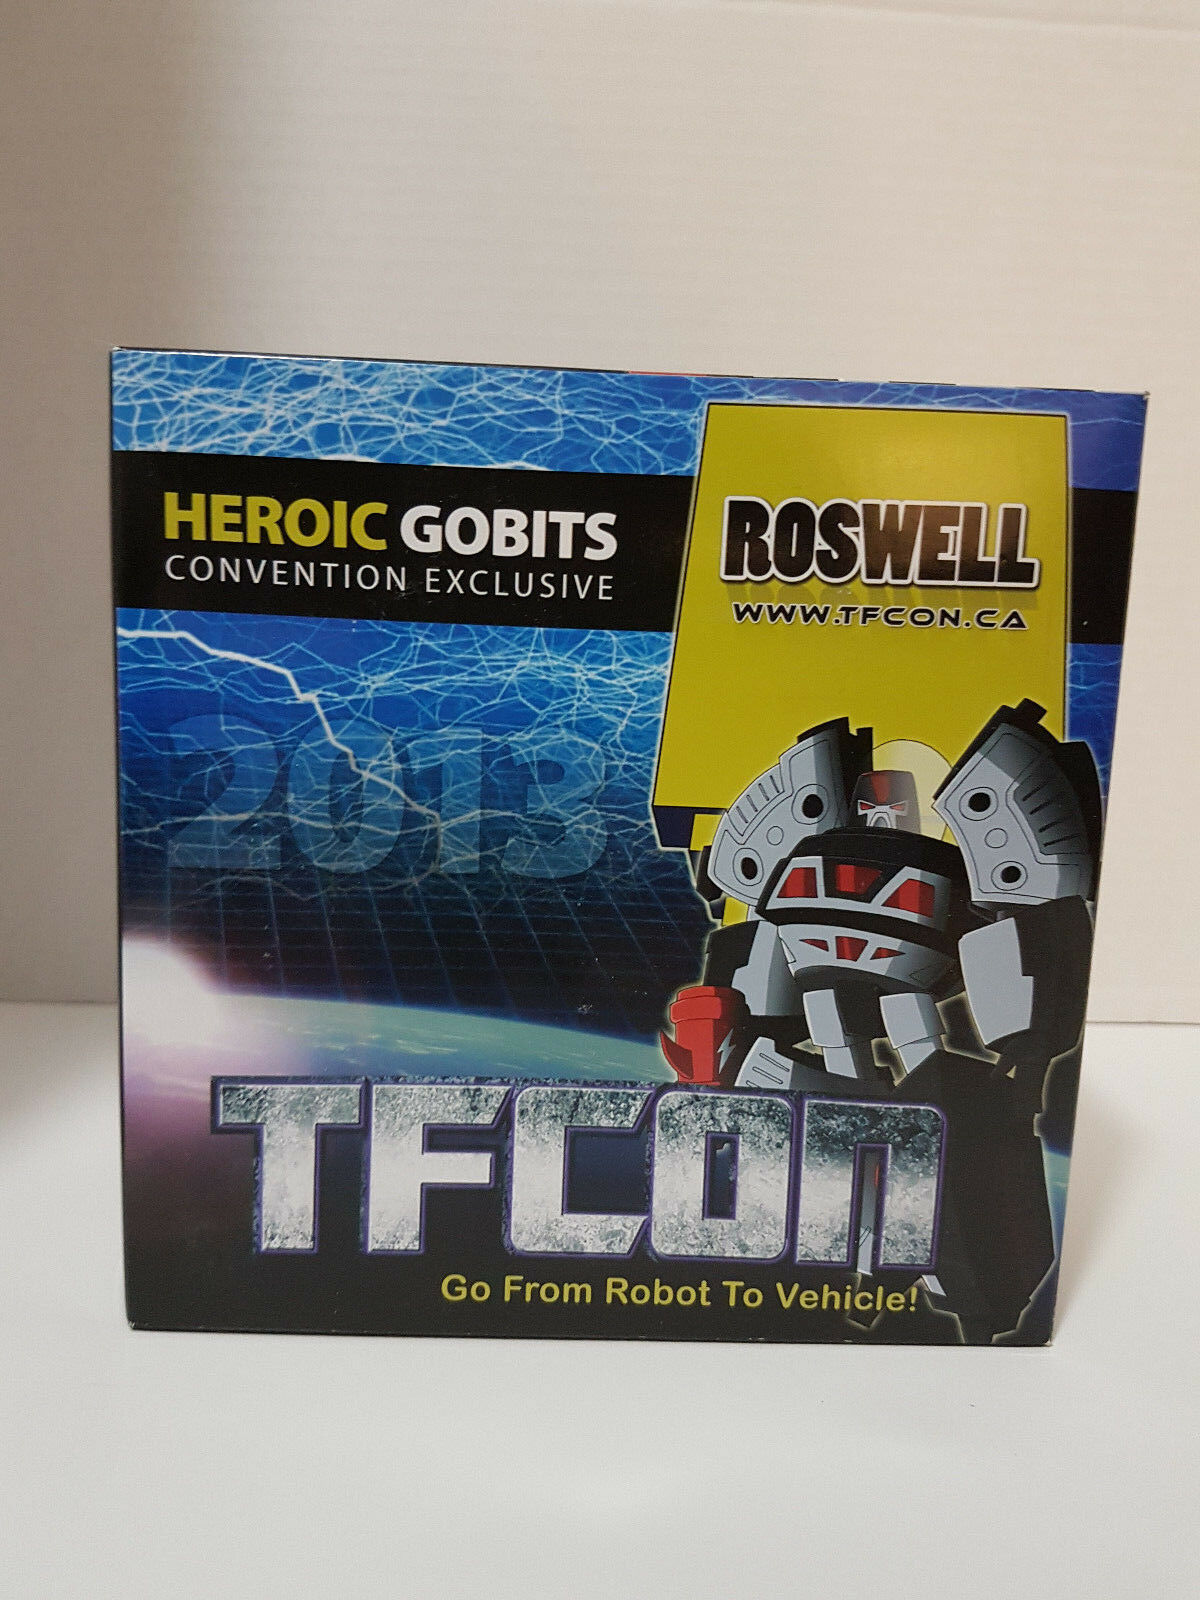 Roswell iGear TFCon 2013 Exclusive 3rd Party Transforming Toy New NIP MISB